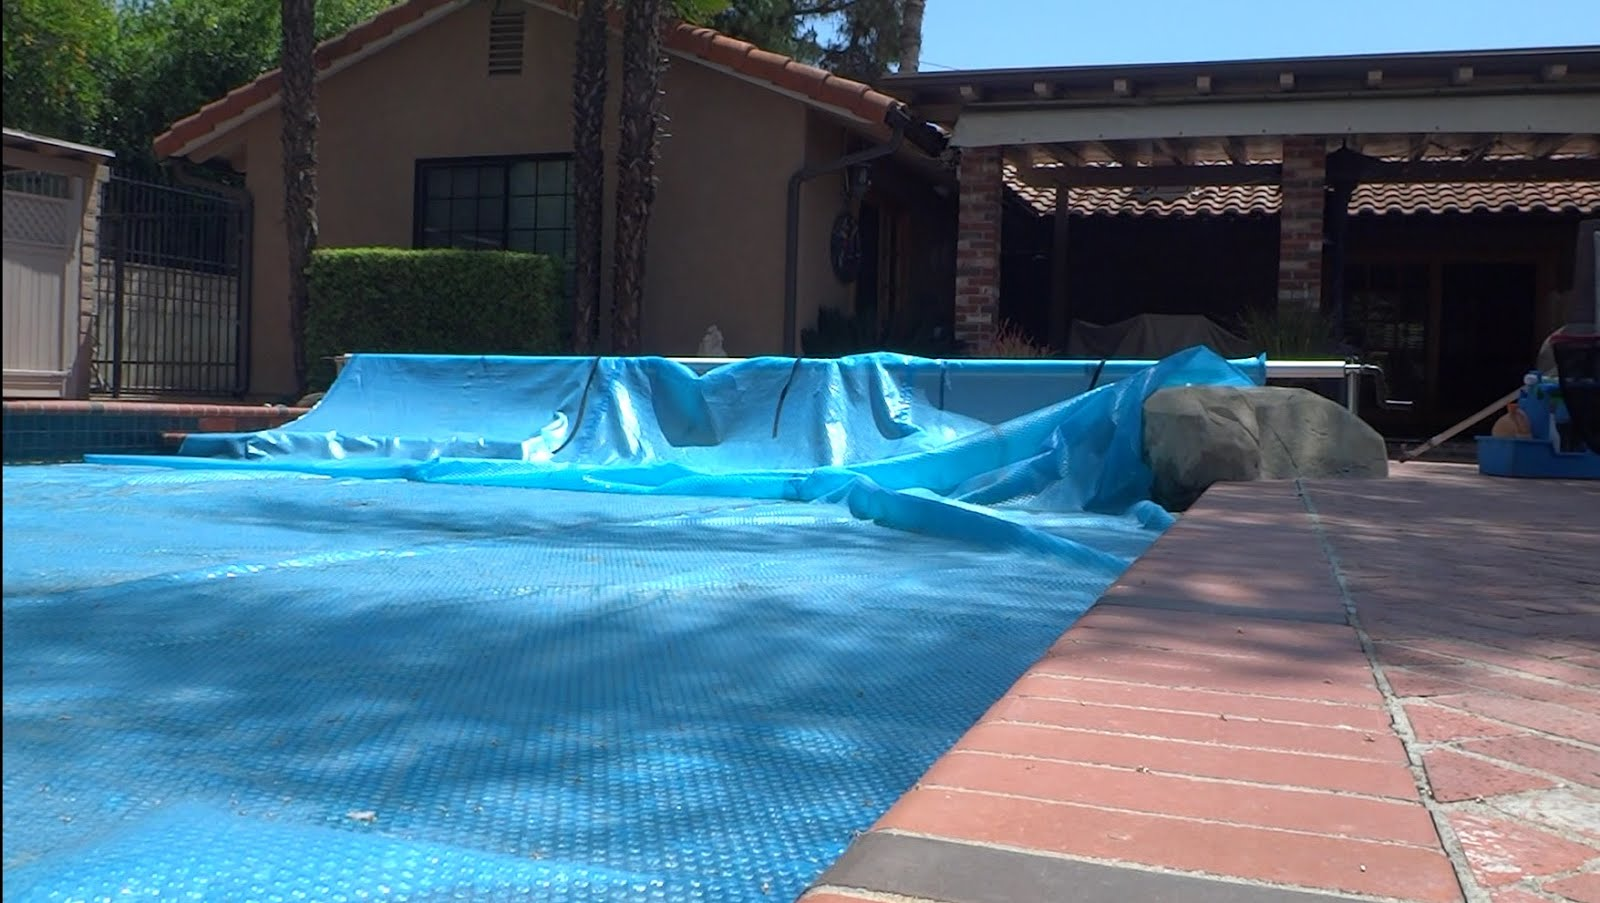 Swimming Pool Tips Reviews Solar Pool Covers Solar Blankets Tips The Good The Bad